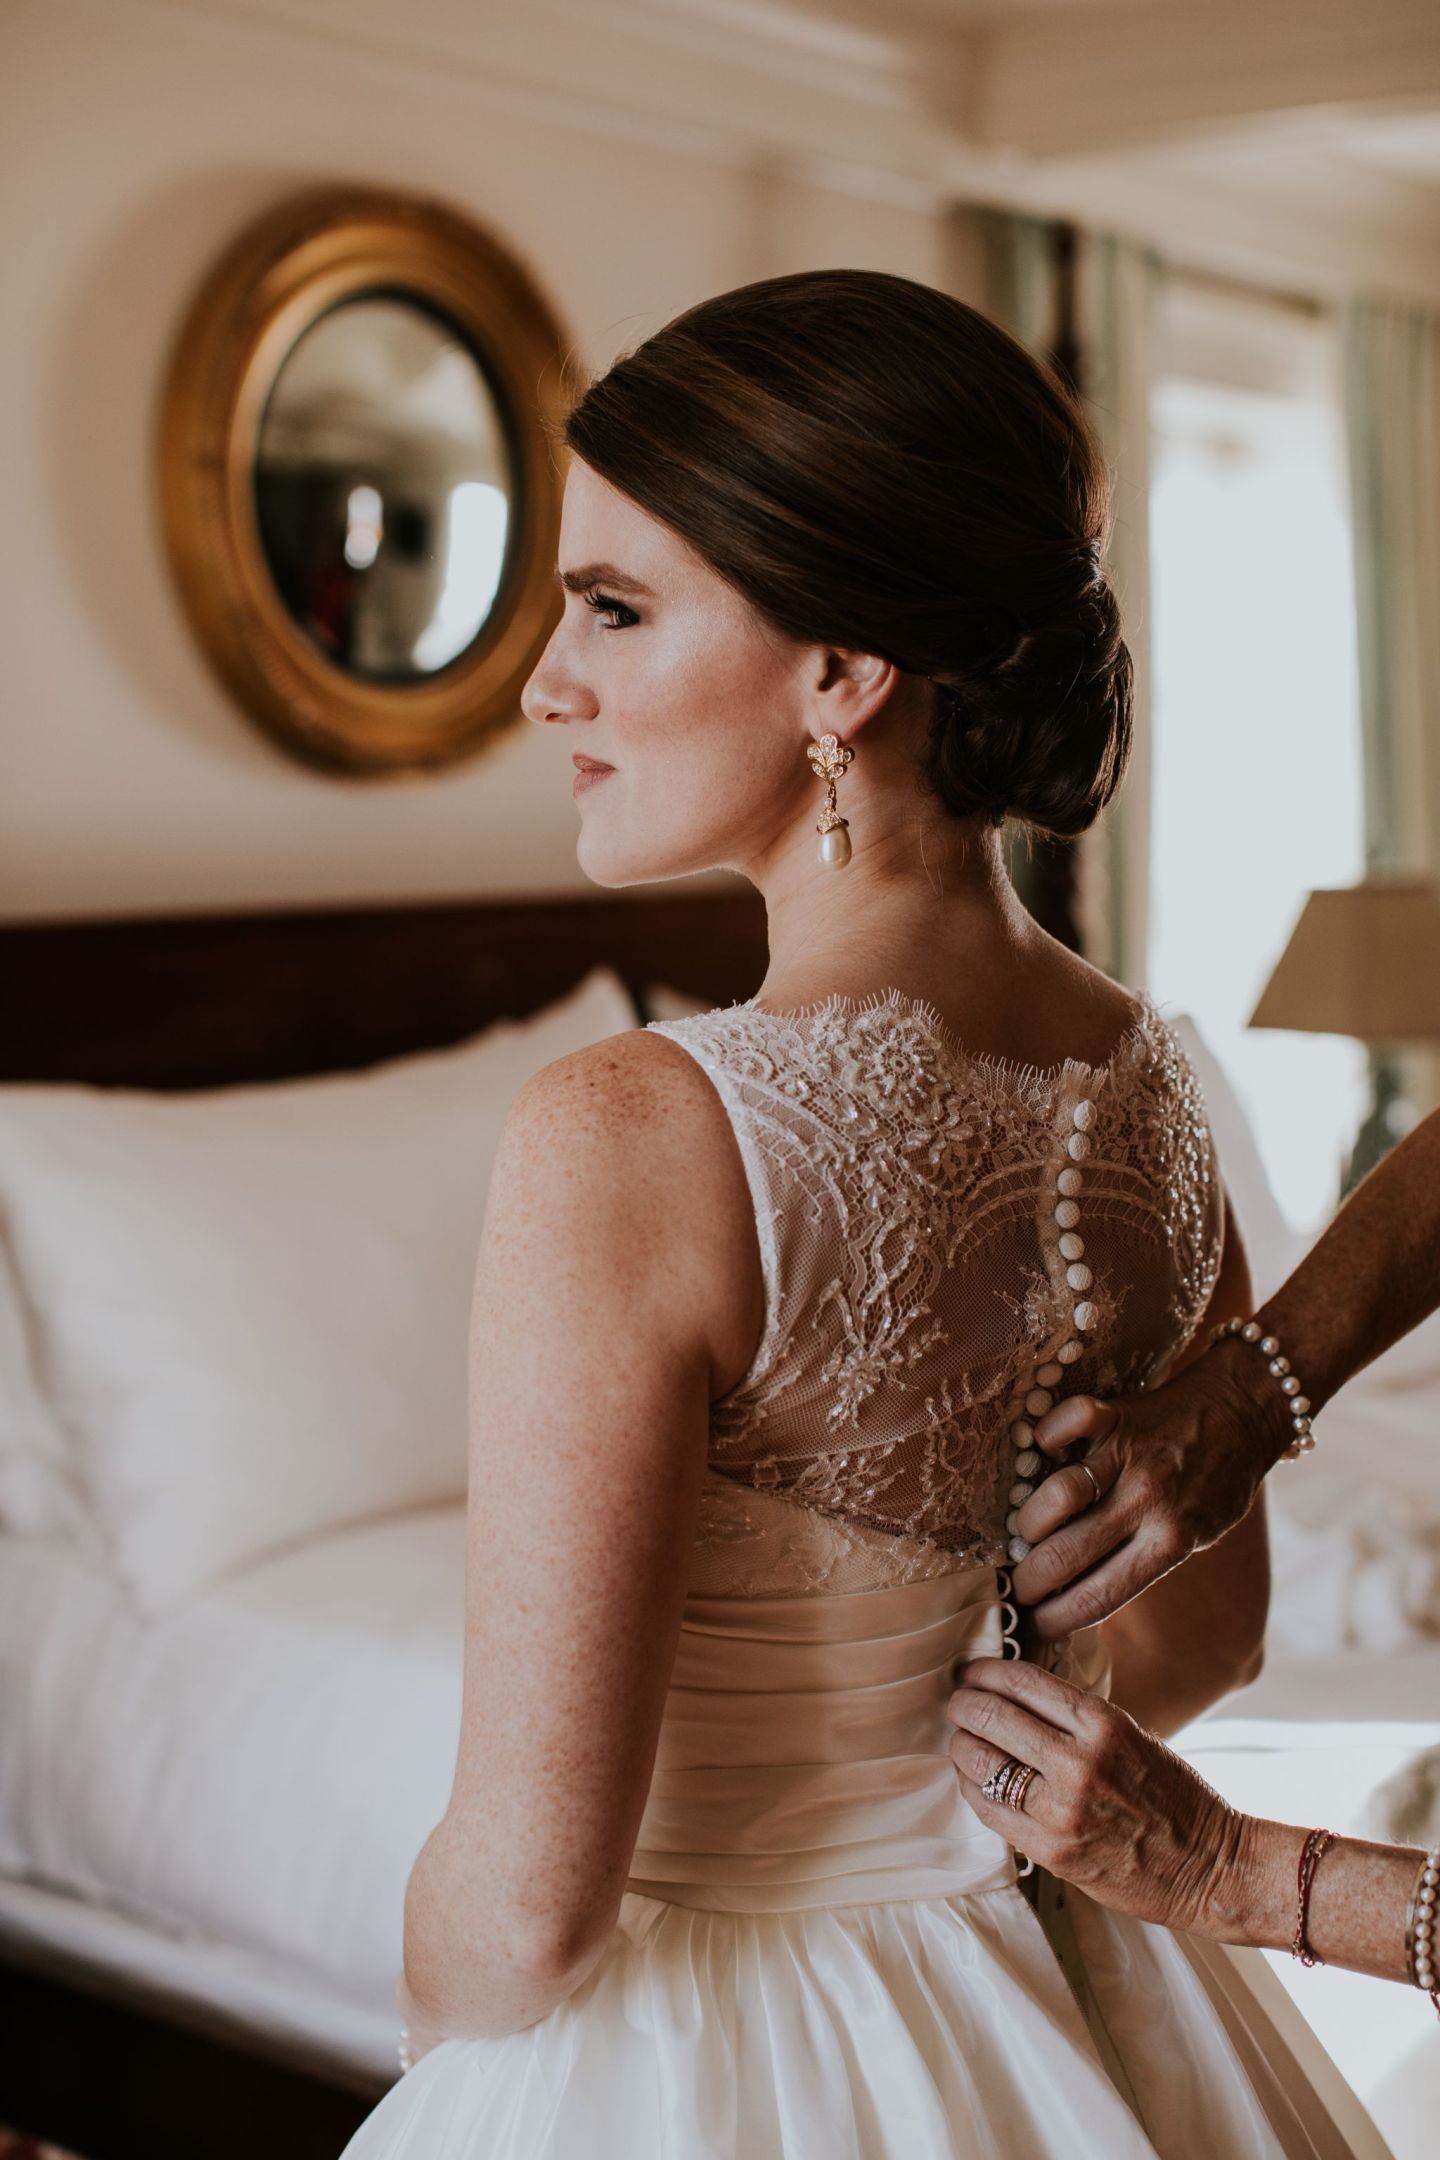 charlottesville bride - charlottesville wedding - augusta jones wedding dress - augusta jones paz - winter bride